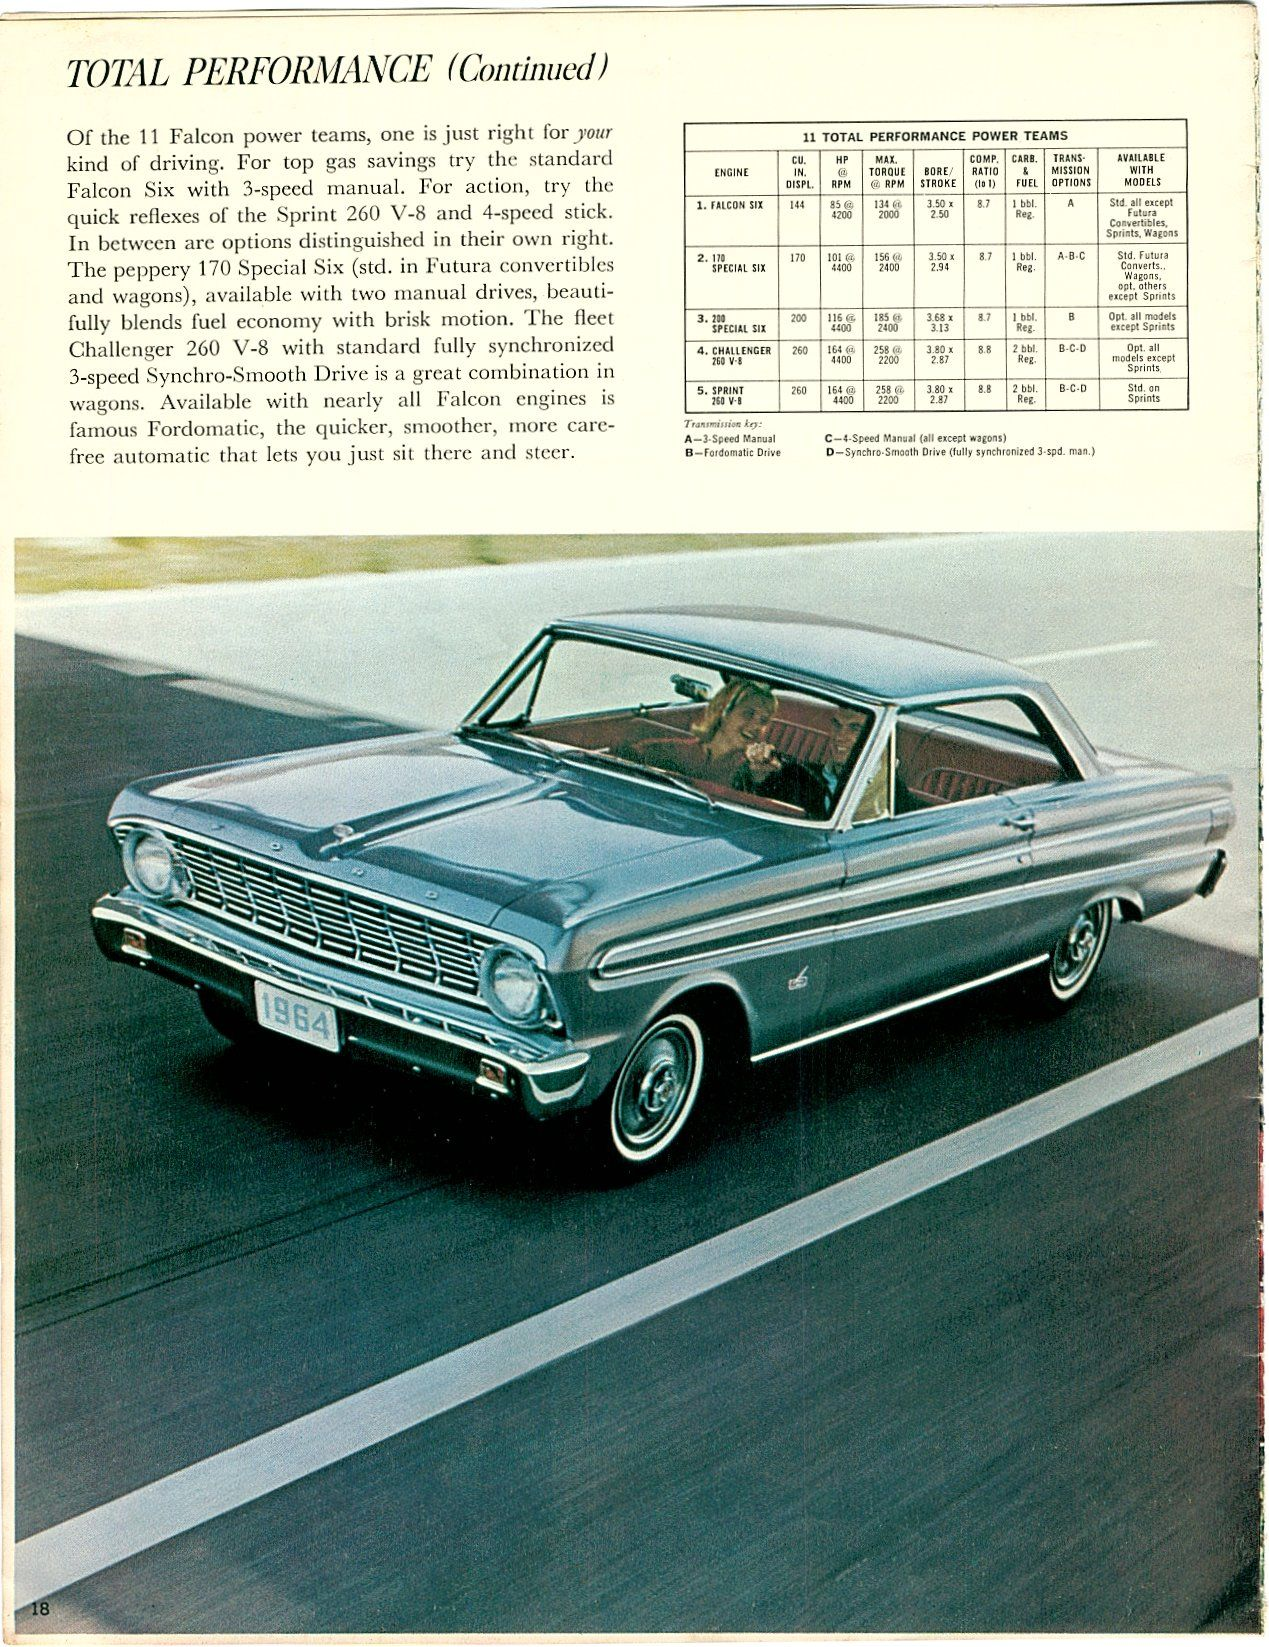 1964 ford falcon 4 door find used 1964 ford falcon 4 door 170 special - 1964 Ford Falcon 1964 Ford Falcon 18